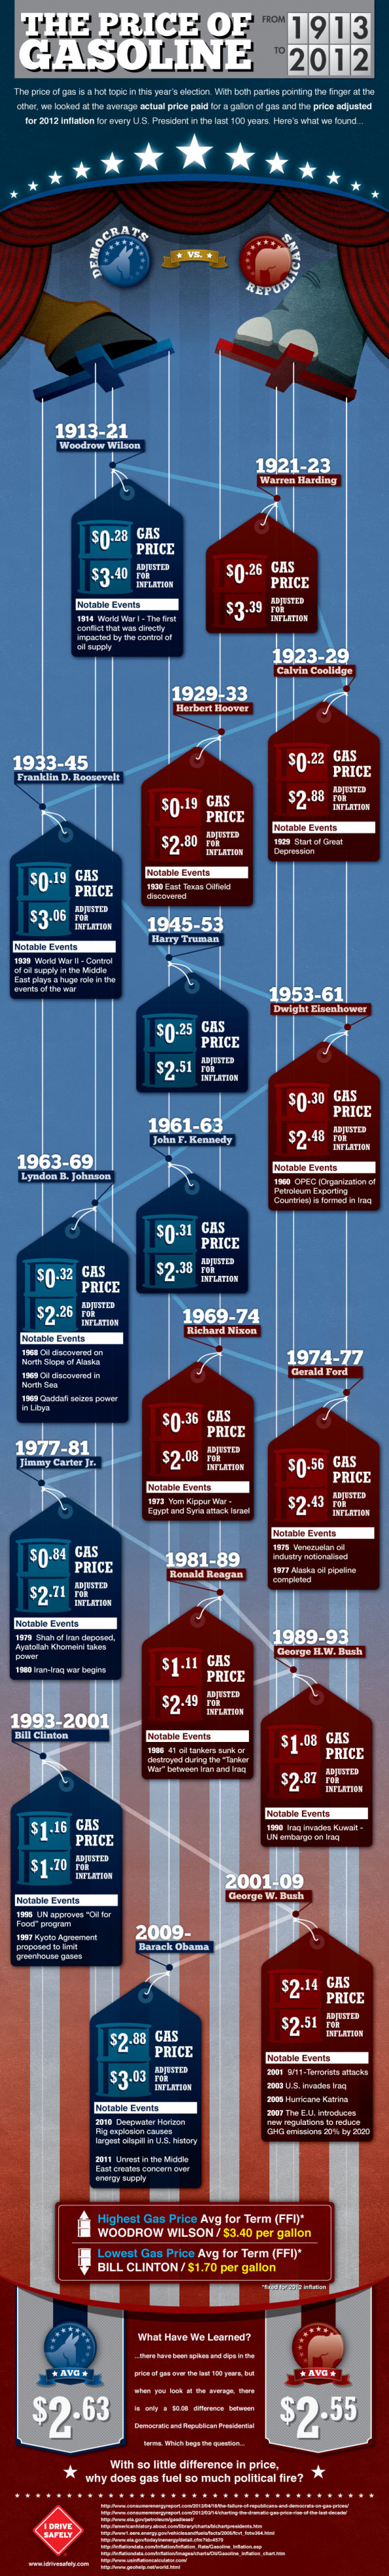 Democrats vs. Republicans: Gas Prices of the last 100 years Infographic